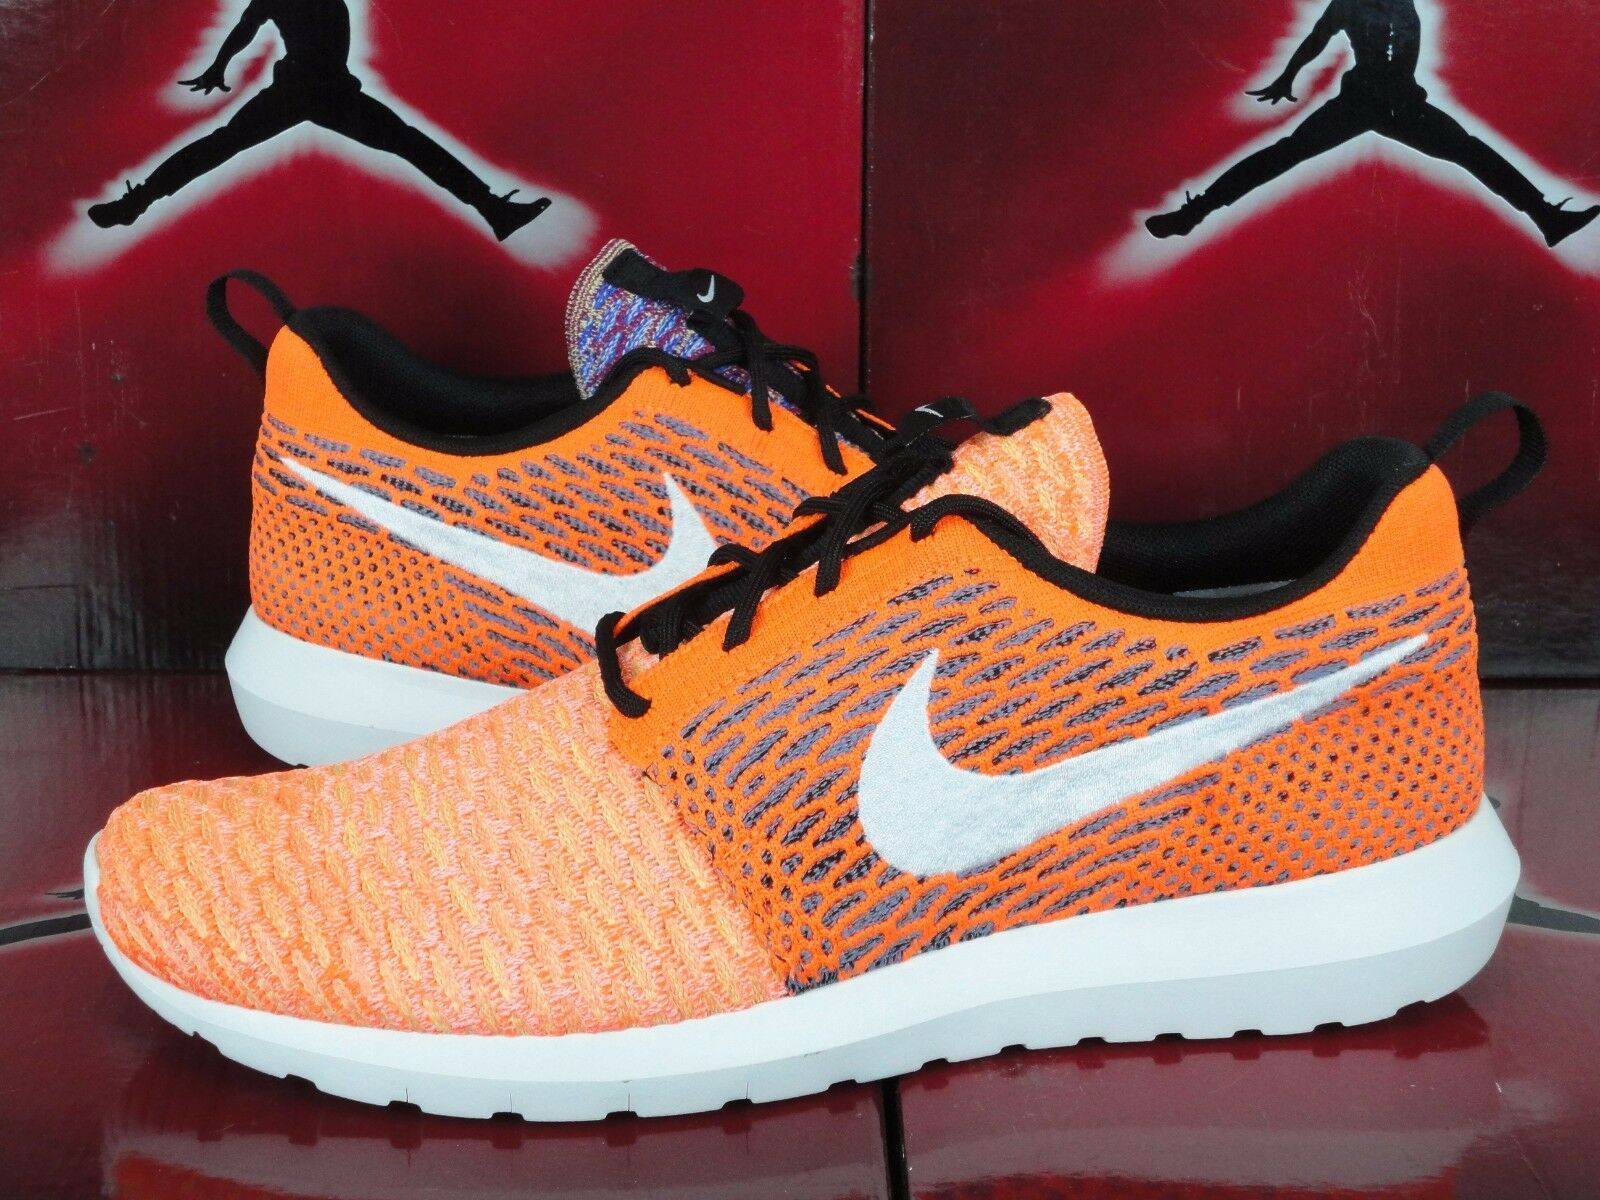 get cheap 388af 75877 lovely NEW NIKE ROSHE RUN NM RANDOM YARN MULTI-COLOR FLYKNIT 677243-100  MEN S